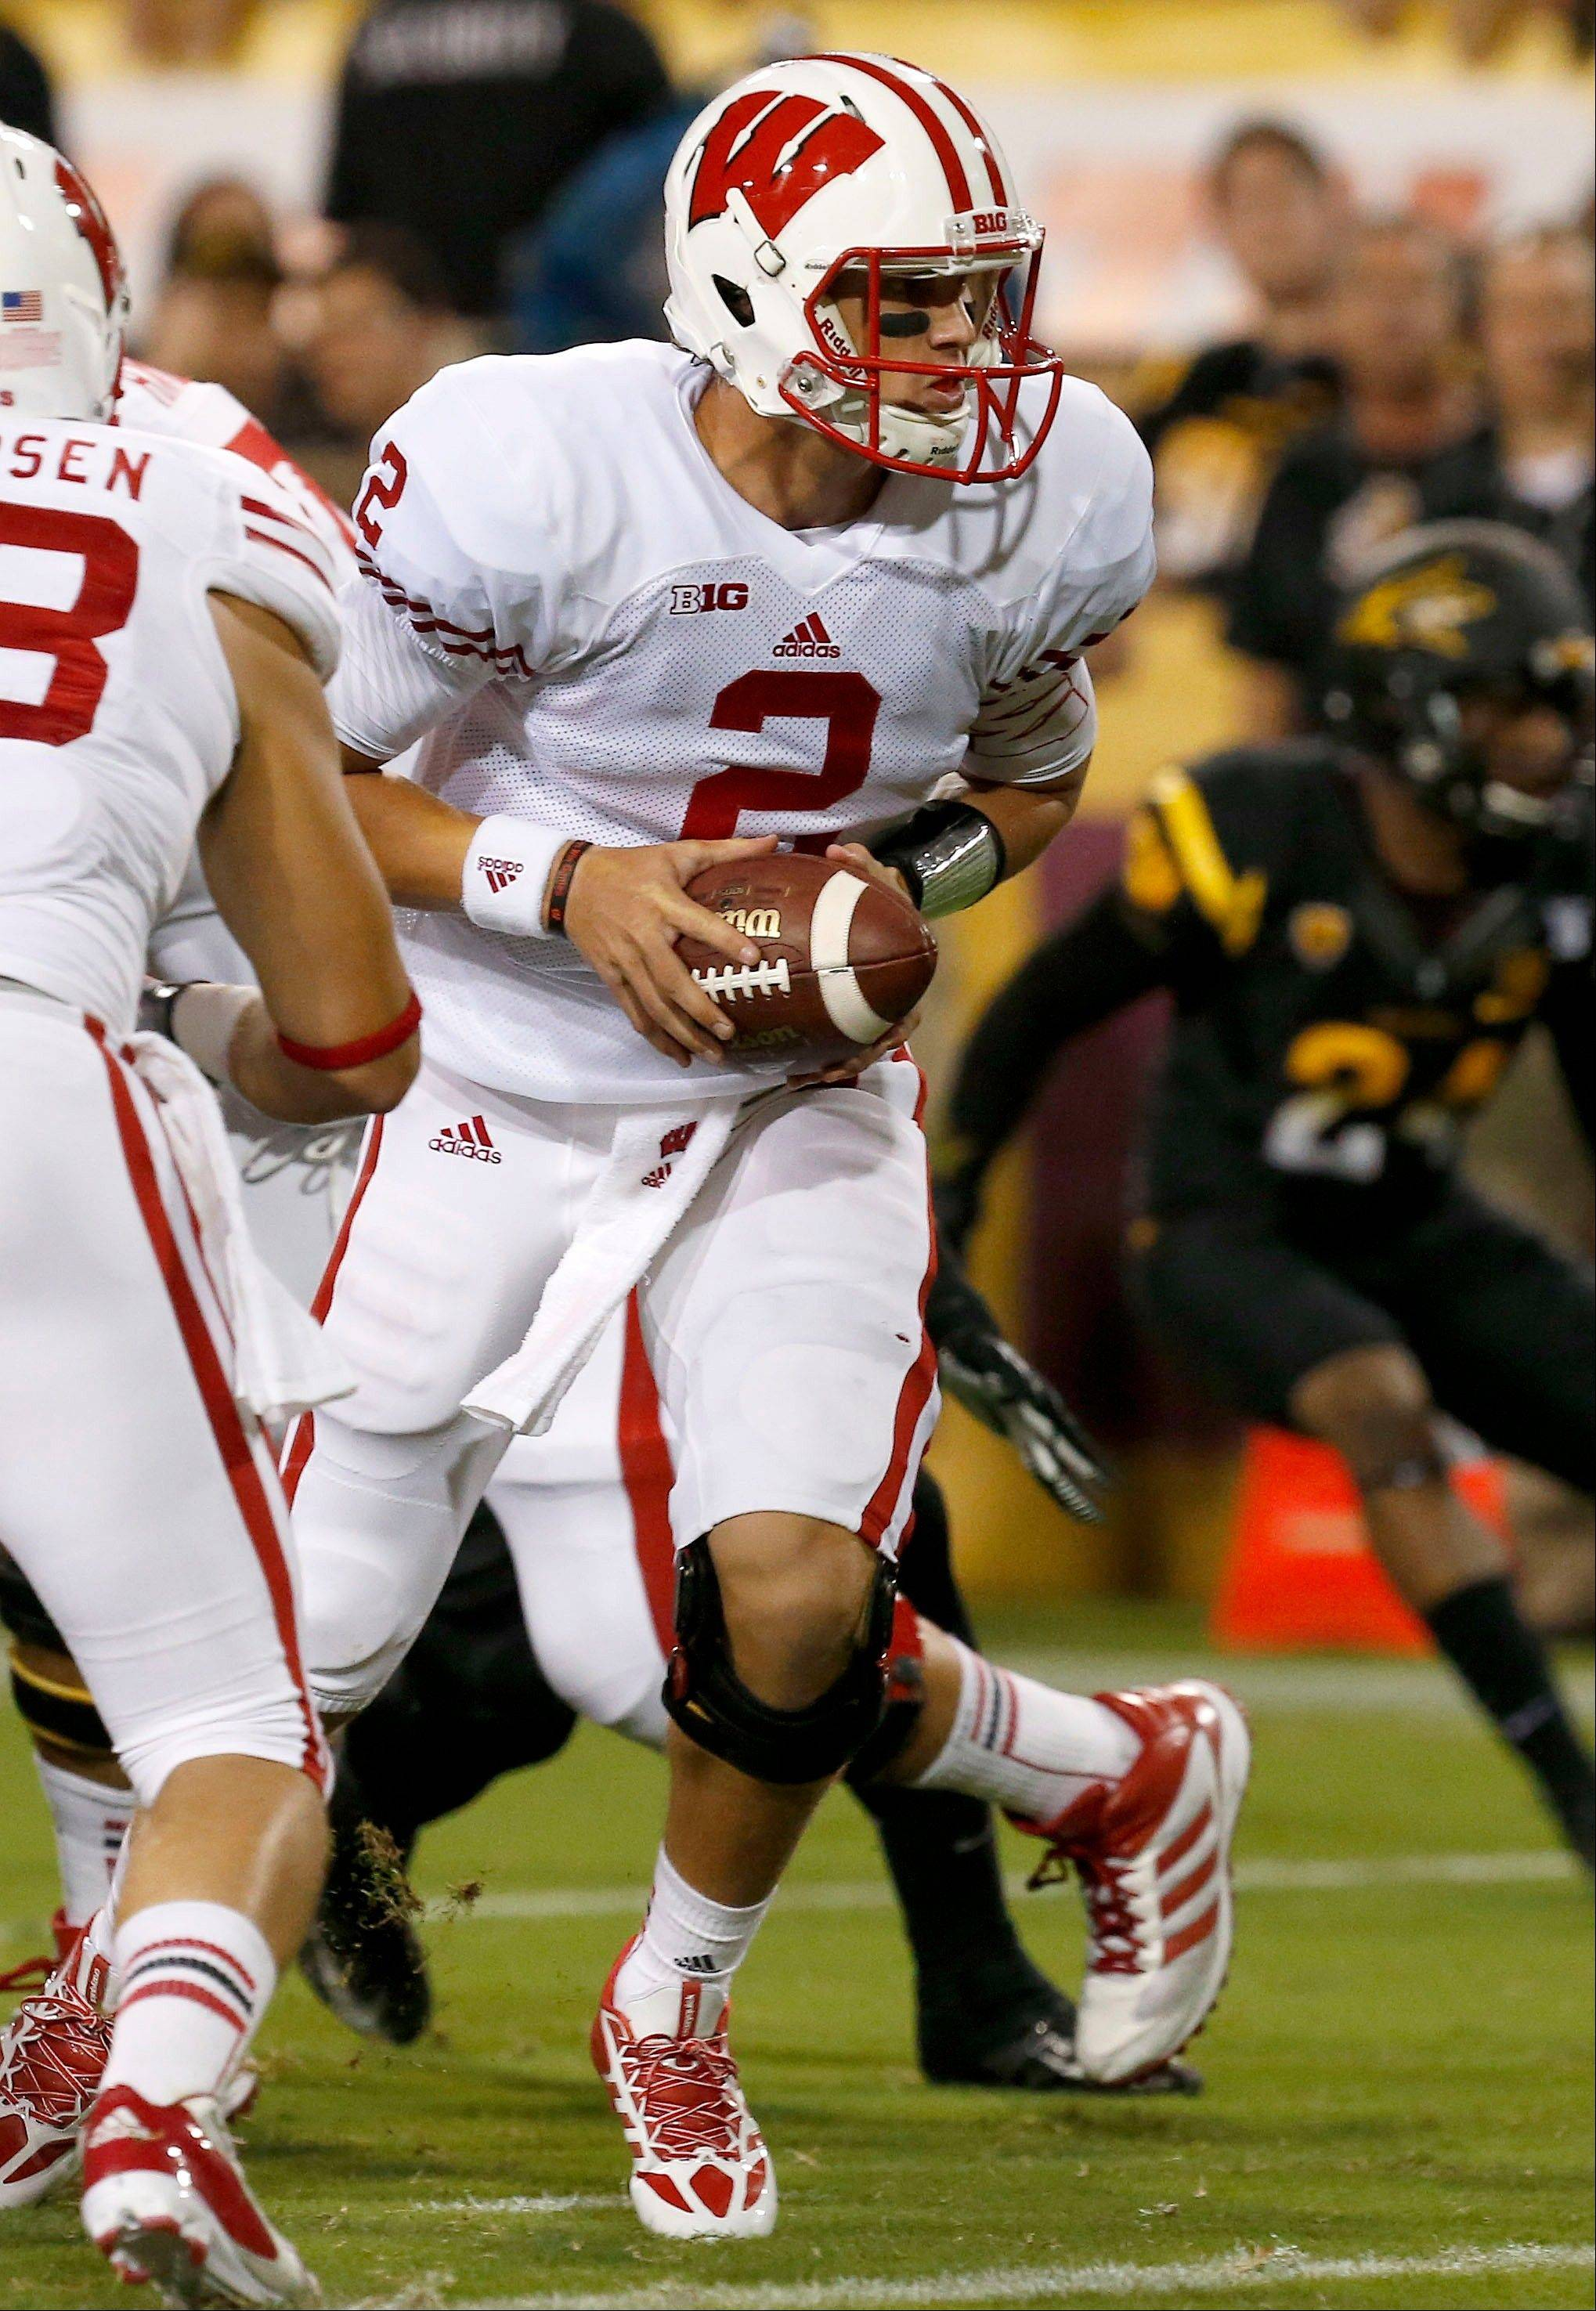 Wisconsin's Joel Stave looks to hand off the ball in the first half last Saturday's road game against Arizona State.